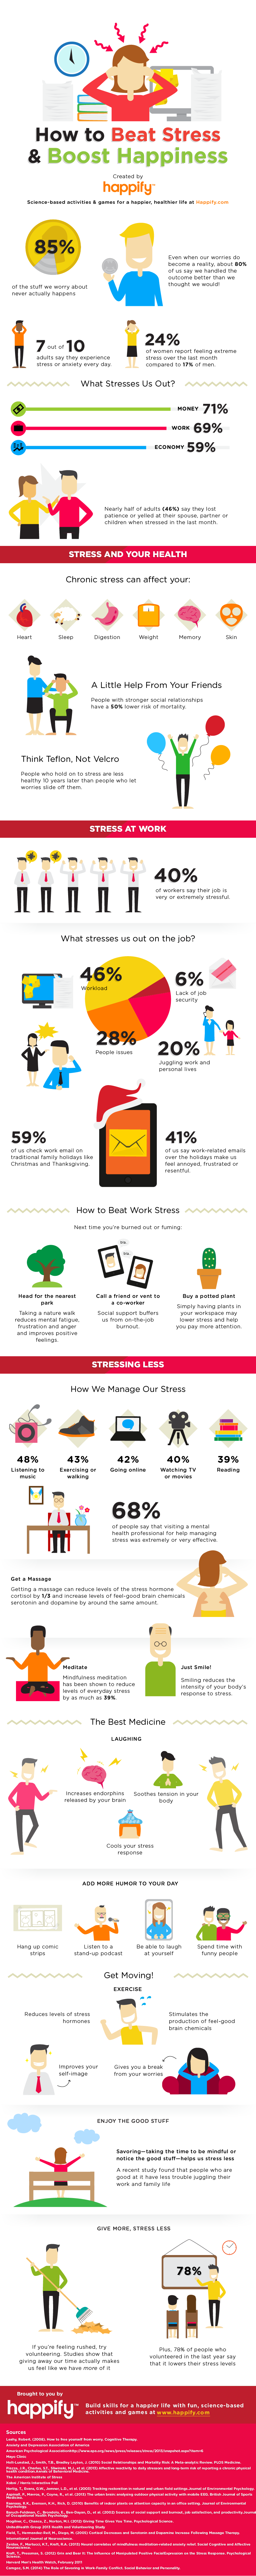 20 Ways to Reduce Work Stress in 1 Minute or Less 20 Ways to Reduce Work Stress in 1 Minute or Less new pics